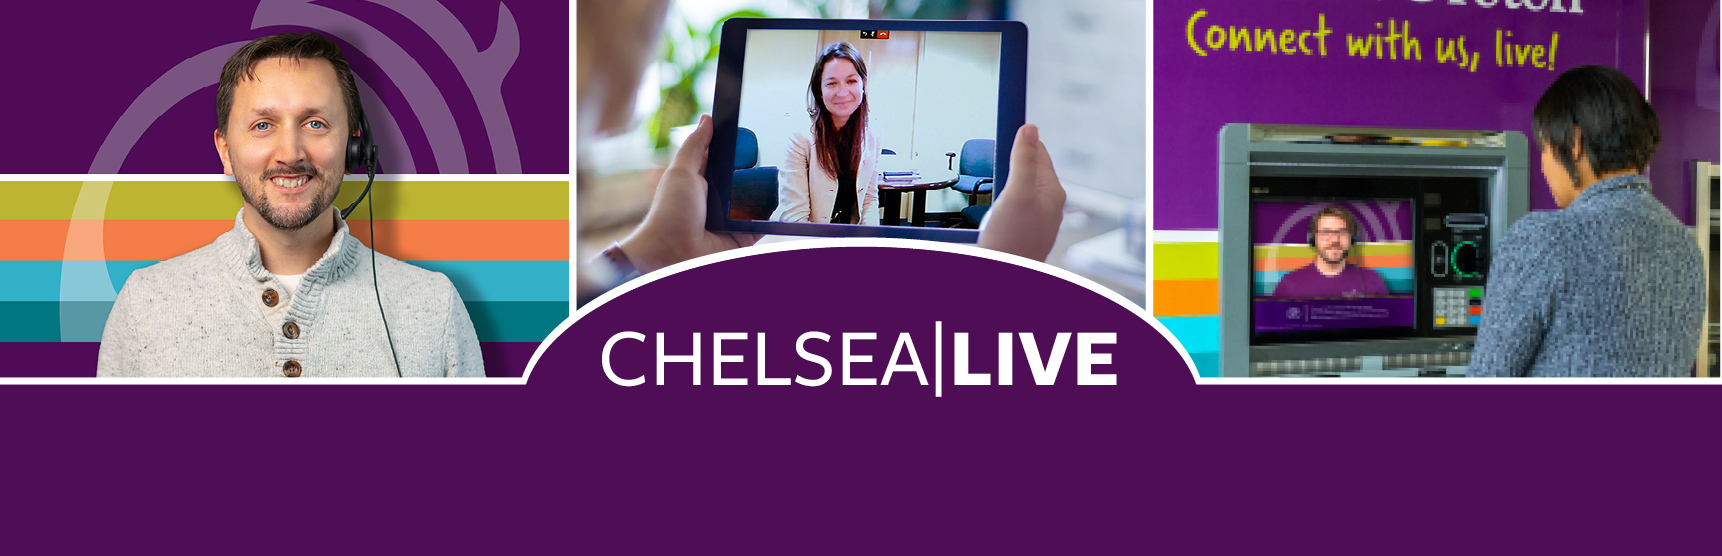 Chelsea|LIVE Video Banking